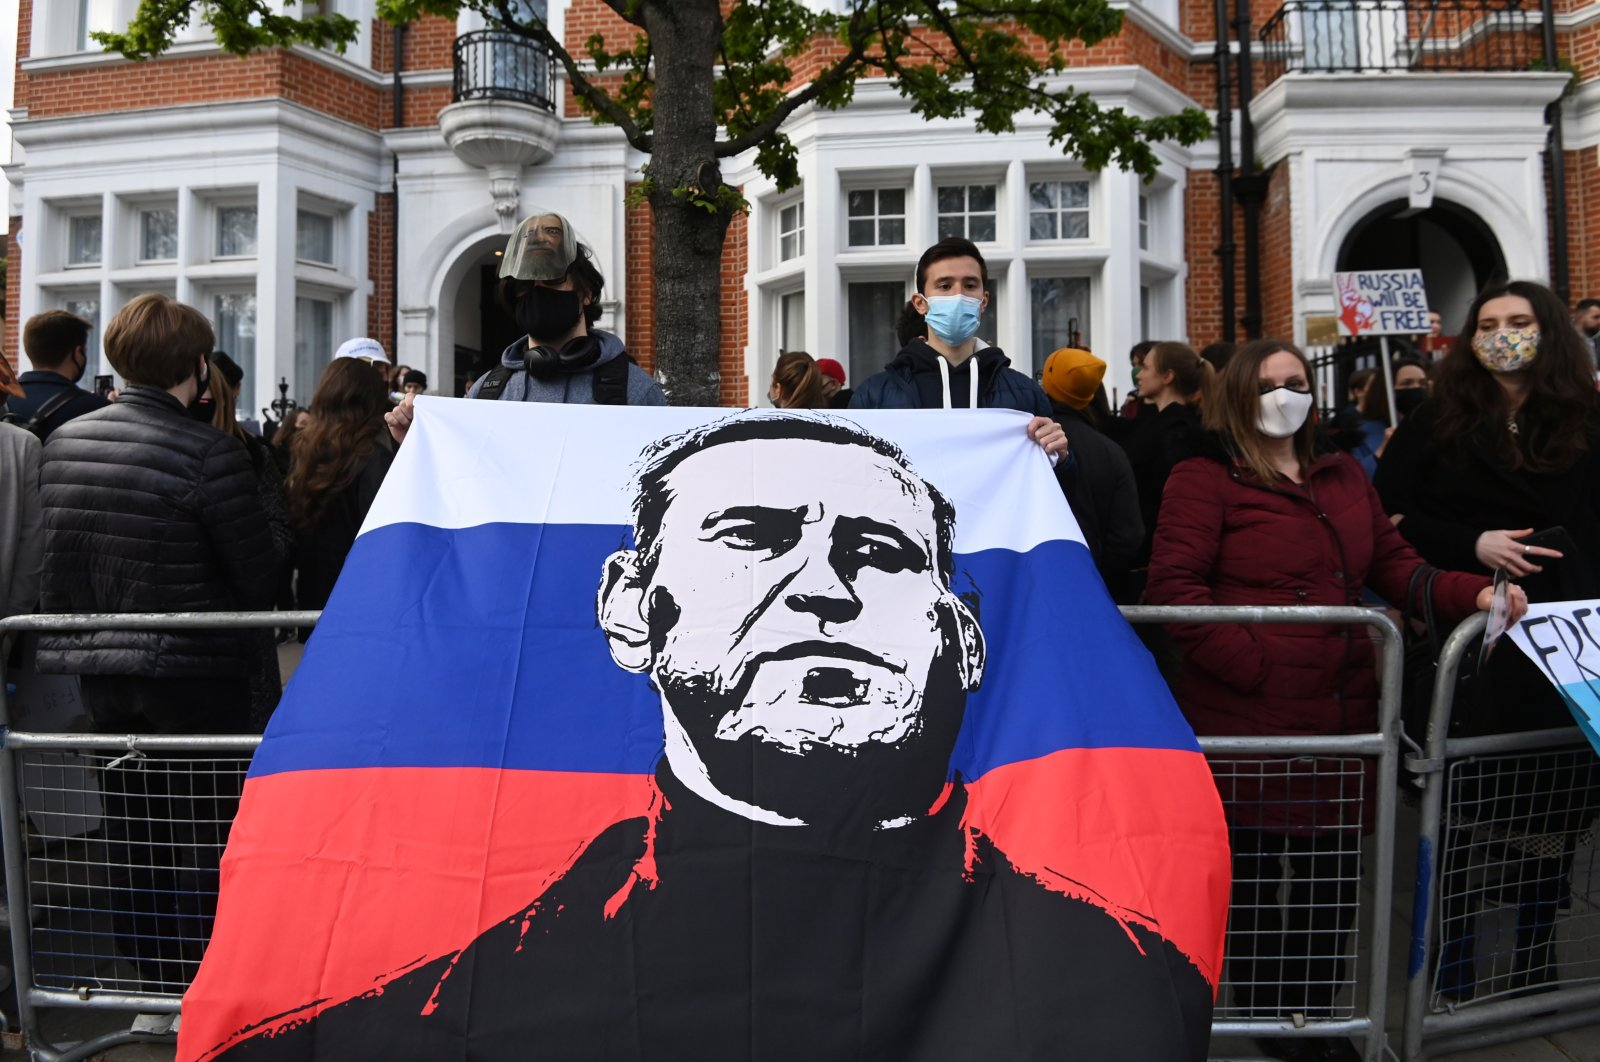 Supporters of Russian opposition figure Alexei Navalny attend a demonstration outside the Russian Embassy in London, U.K., April 21, 2021. (EPA Photo)